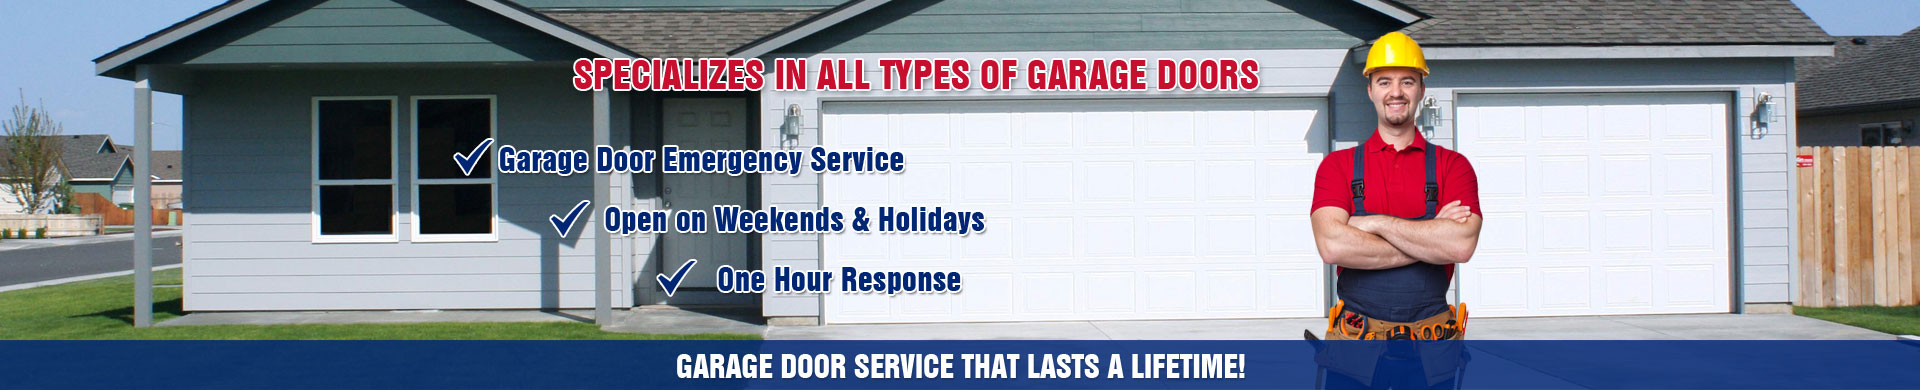 1 Garage Door Repair Company New York | NY Garage Doors